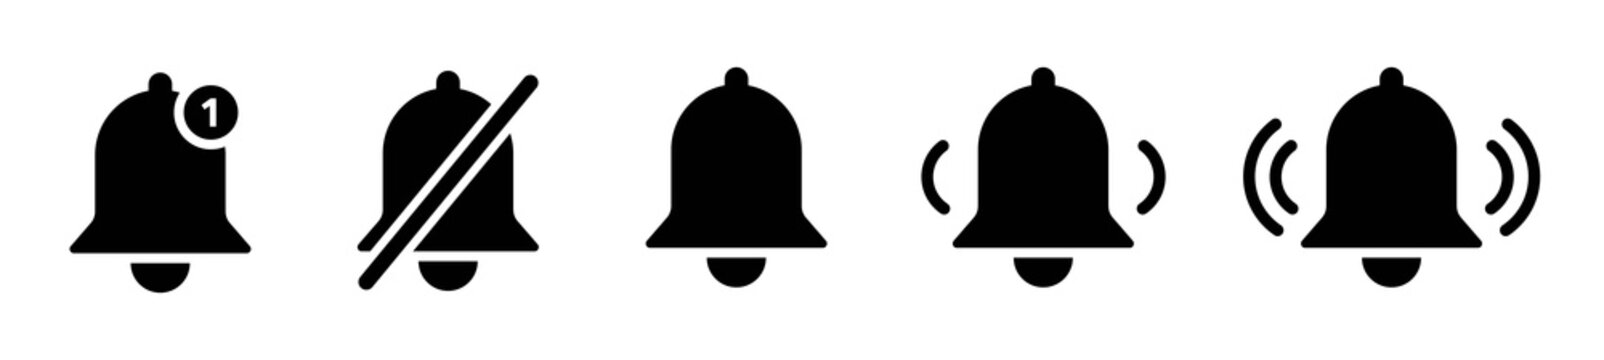 Set of notification bell icon for incoming inbox message